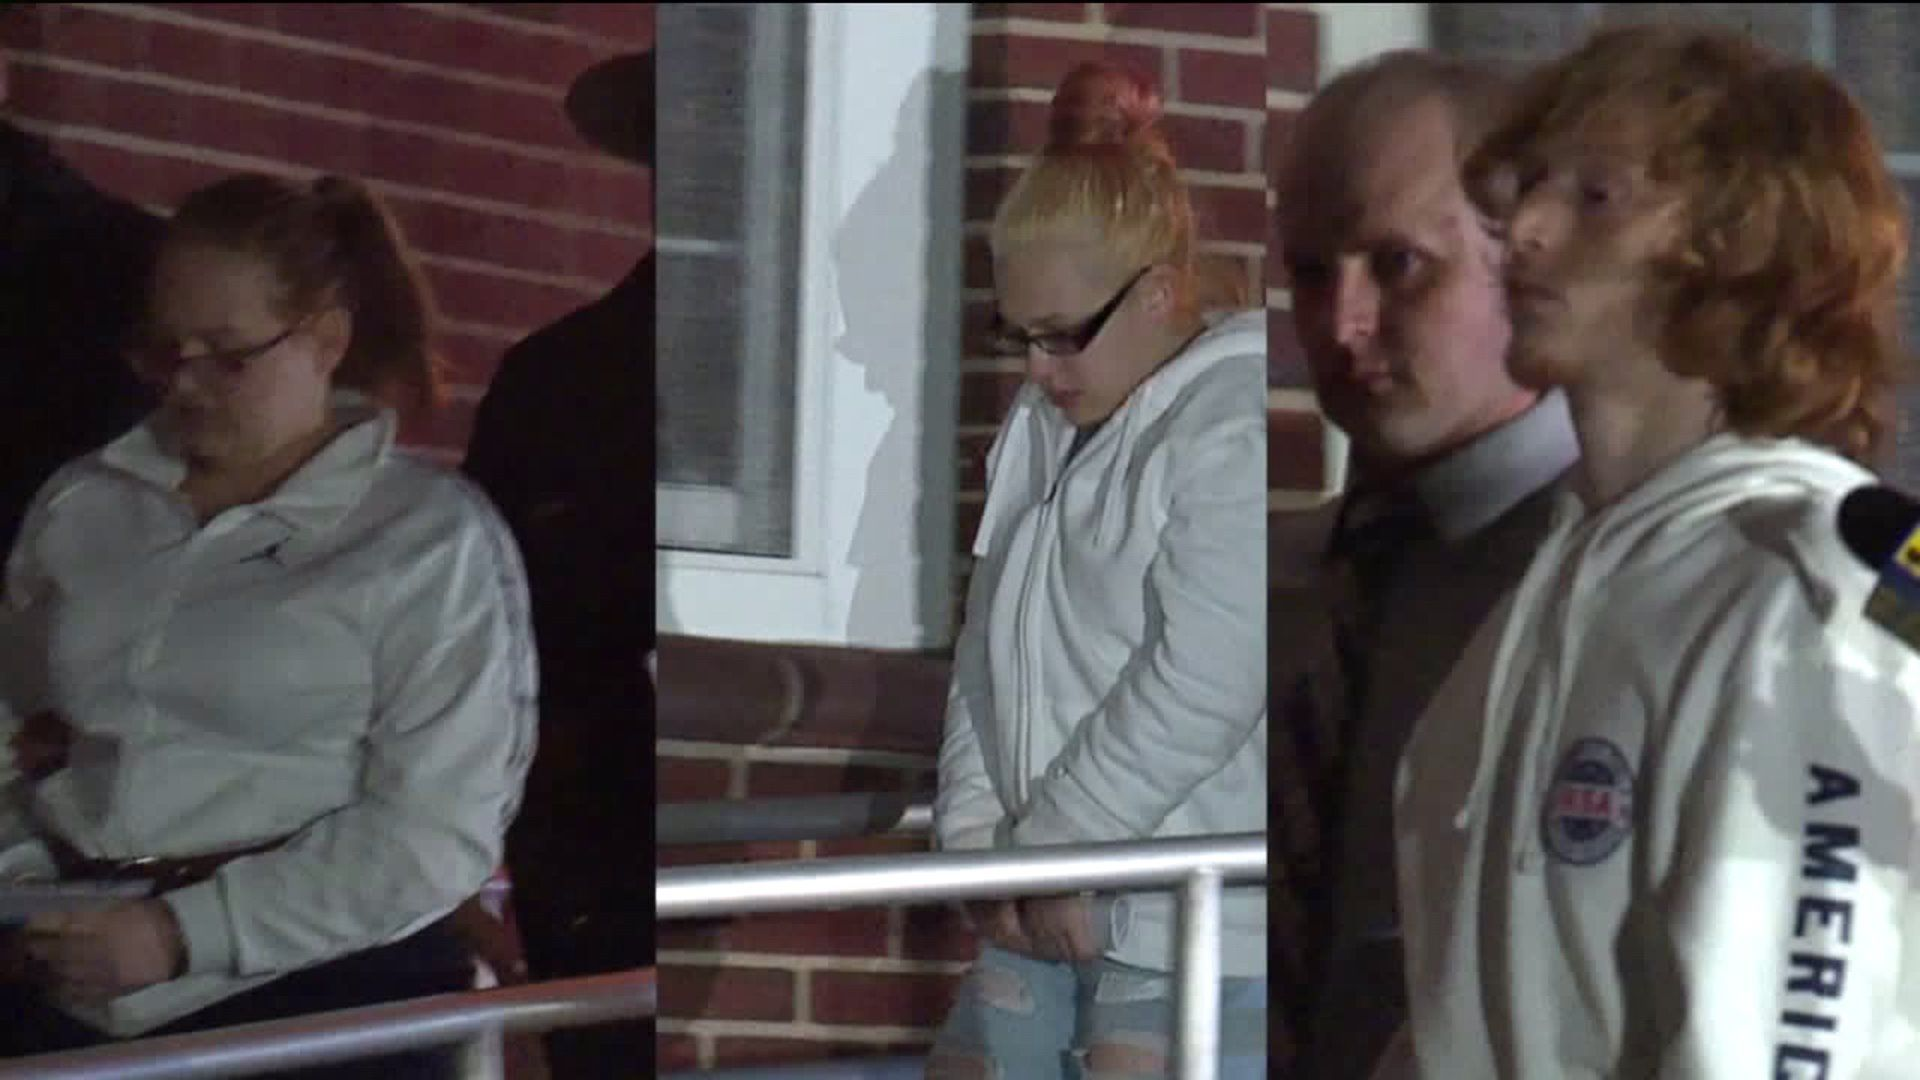 Teen accused of leading friends to rob, kill grandfather